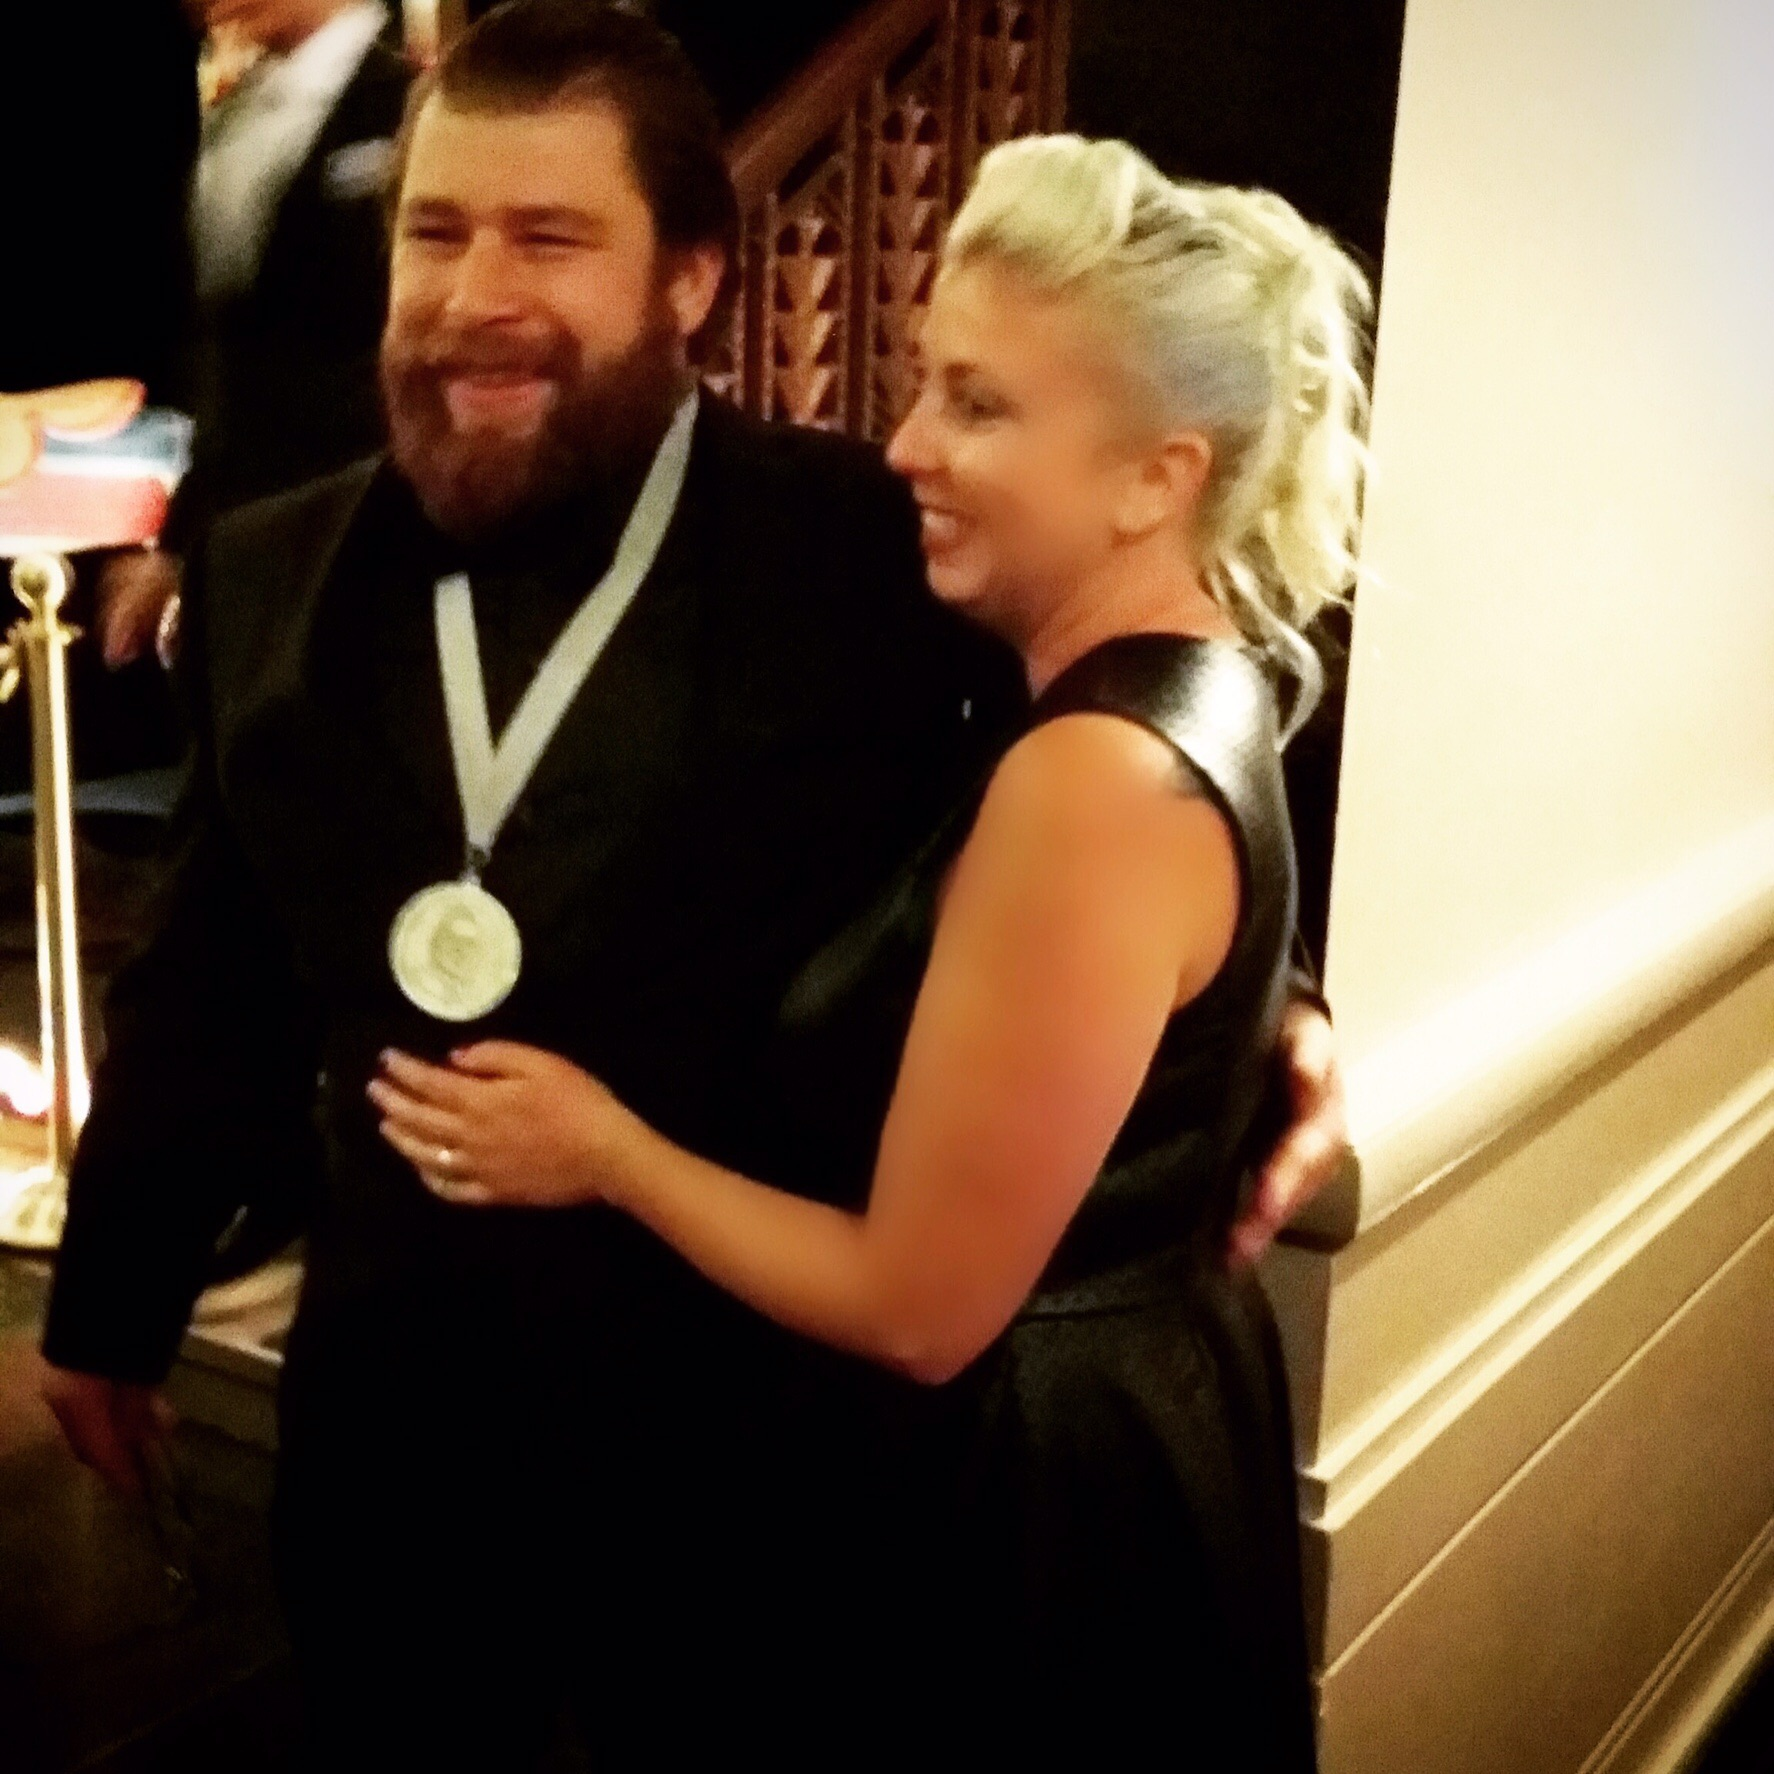 The Chef and I moments after he won the James Beard Award for Best Chef: Great Lakes